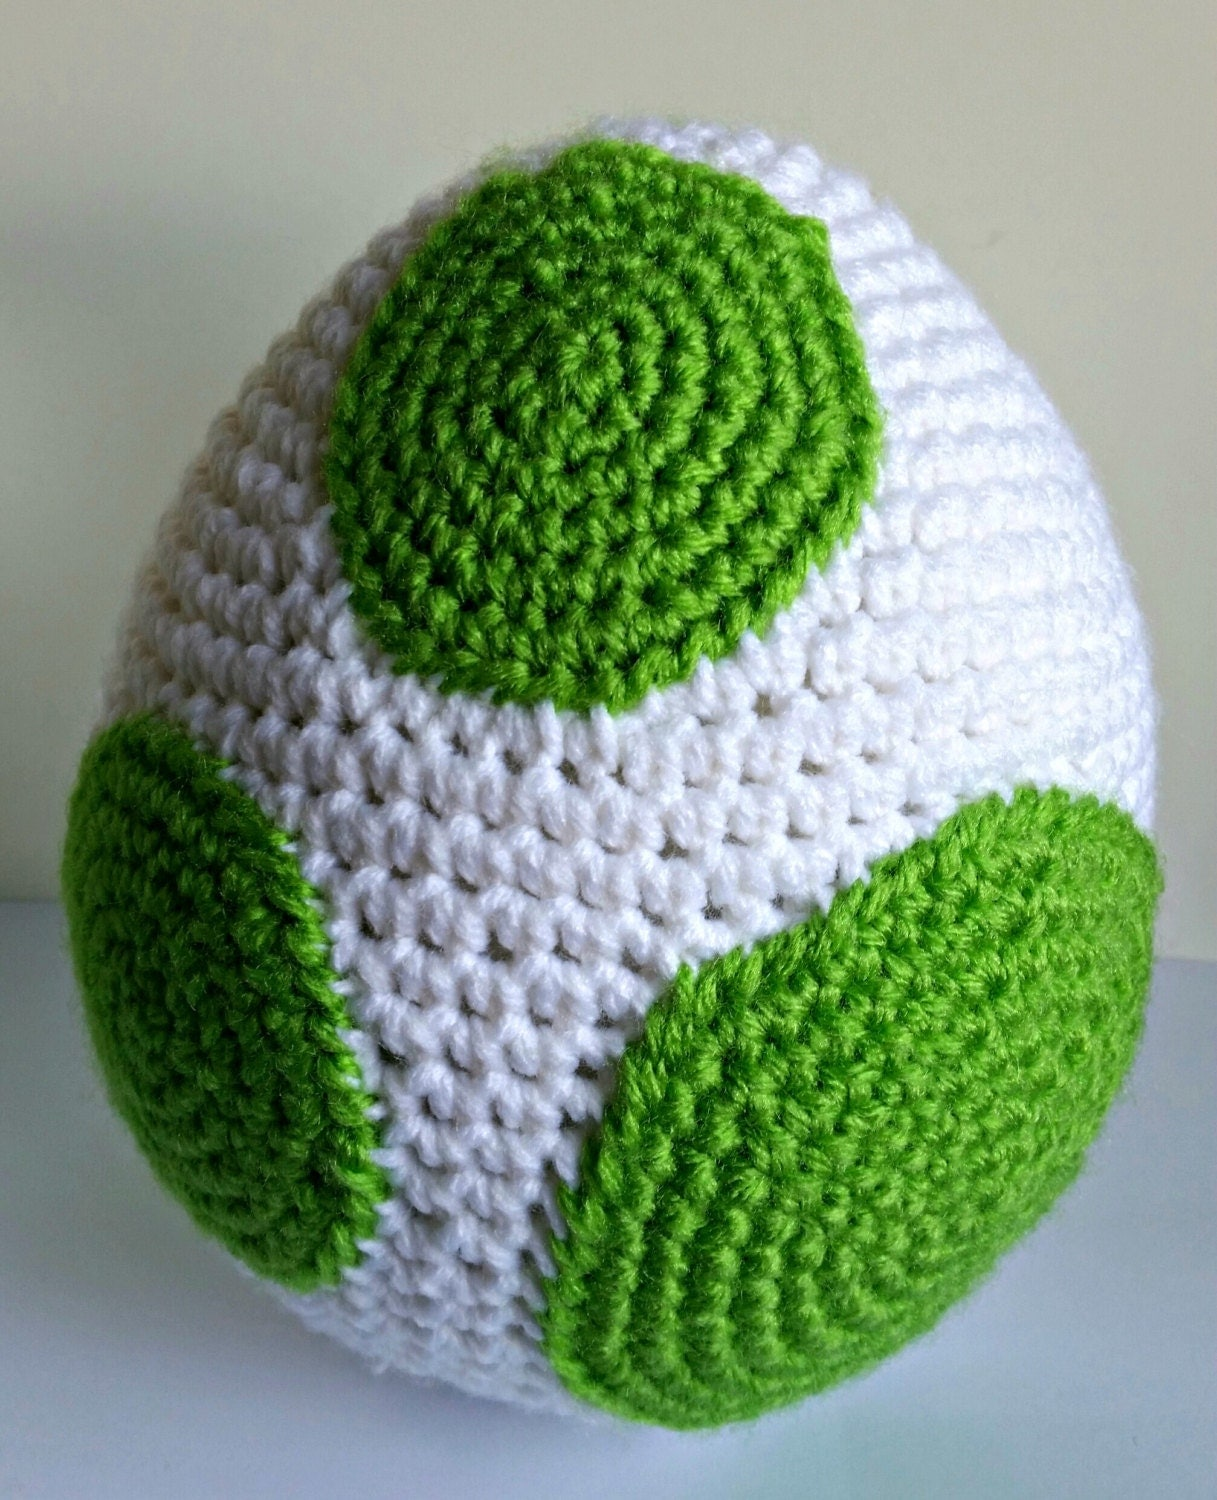 Crochet Patterns Yoshi : Yoshi Egg Amigurumi Crochet Pattern PDF/ Yoshis New by ...